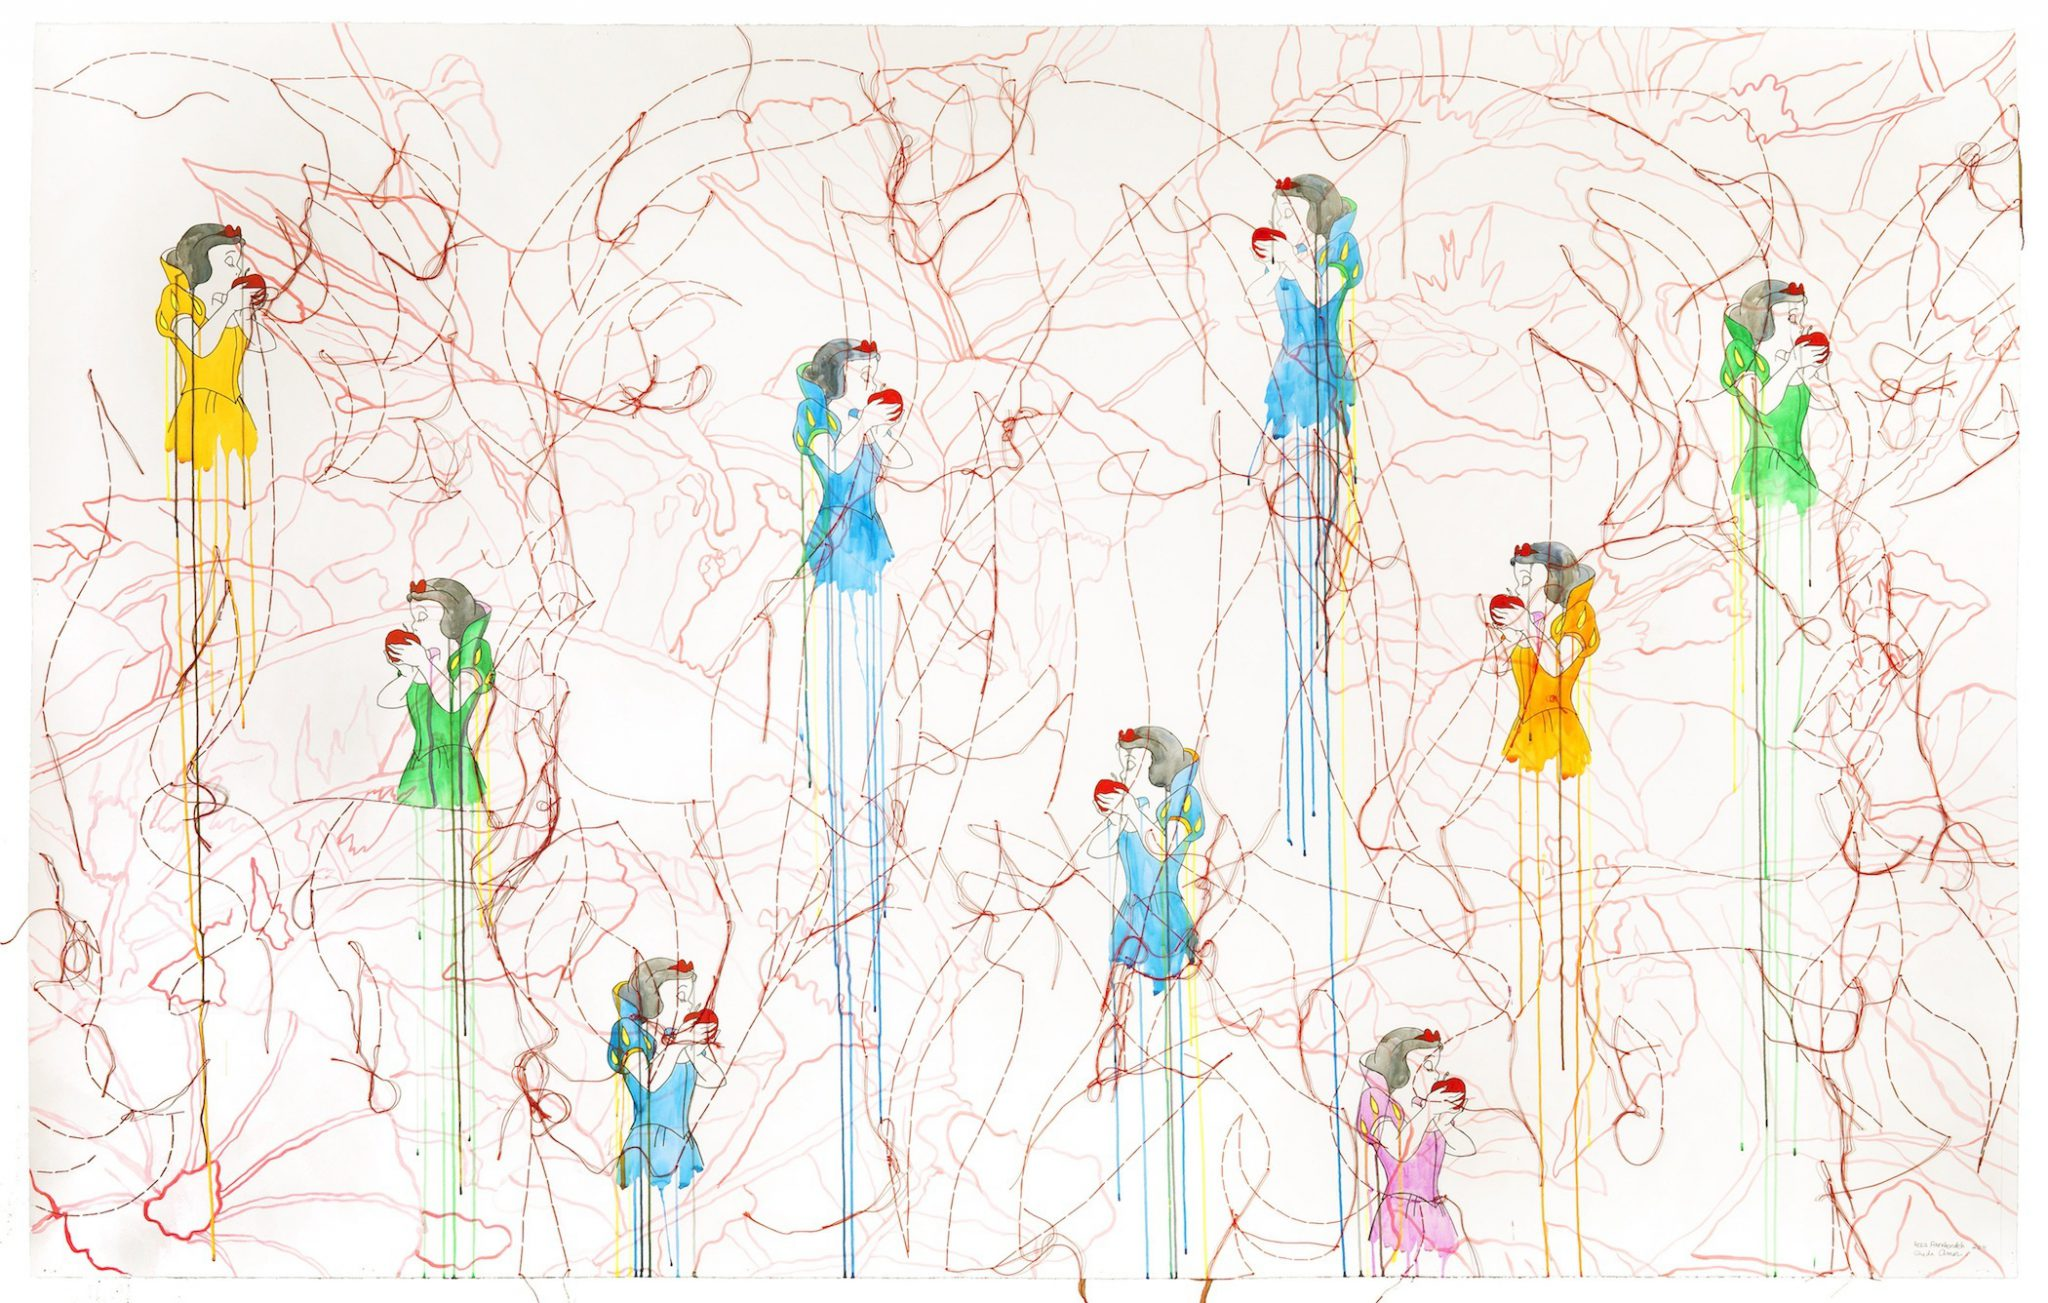 Reza Farkhondeh and Ghada Amer, Apples and Petunias (2011)